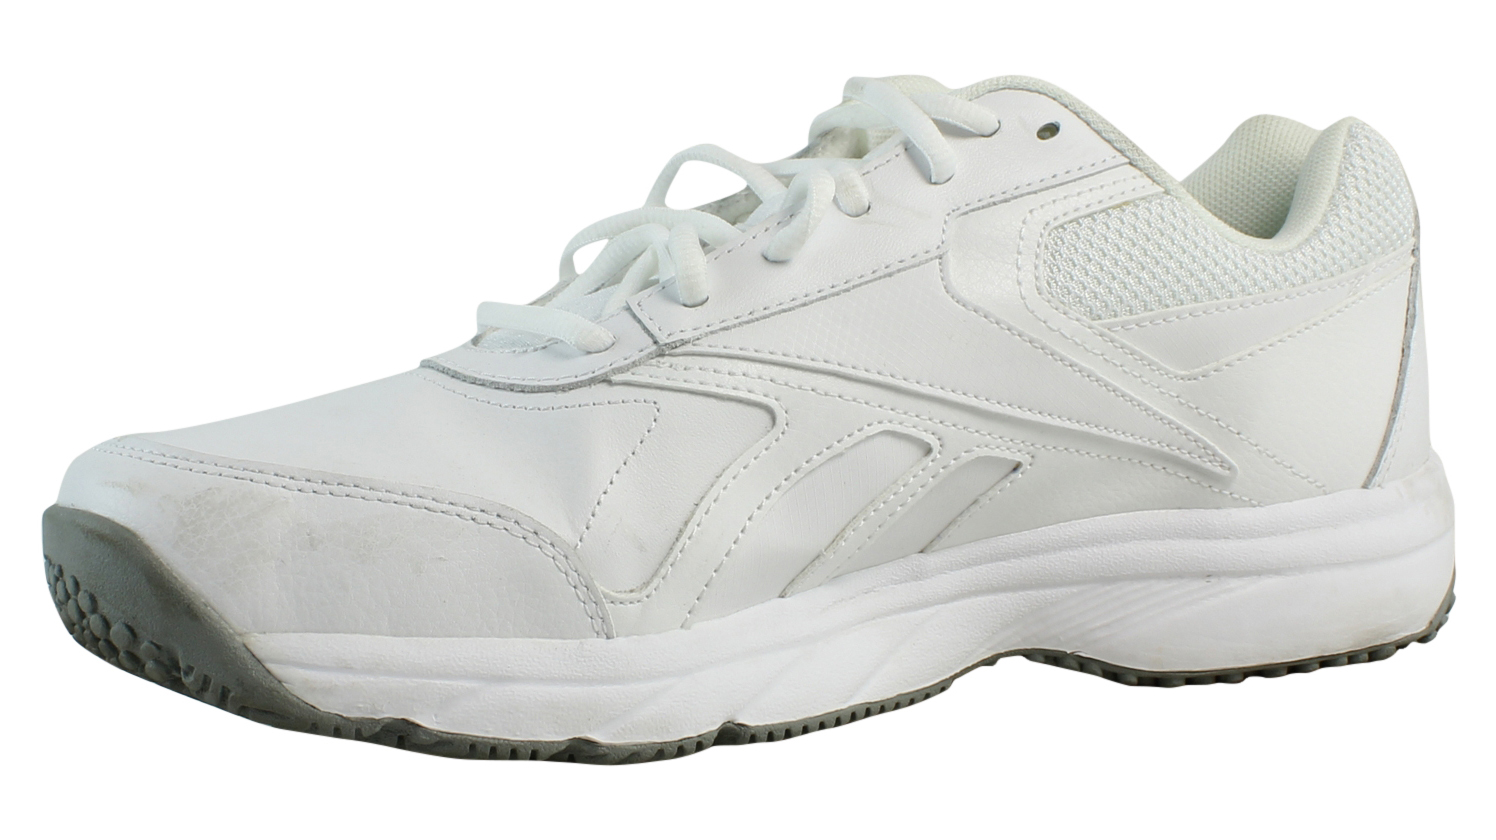 separation shoes 3c50e 882a9 ... Reebok Mens Mens Mens Work-Cushion White FlatGrey Walking Shoes Size 11  (351575 ...